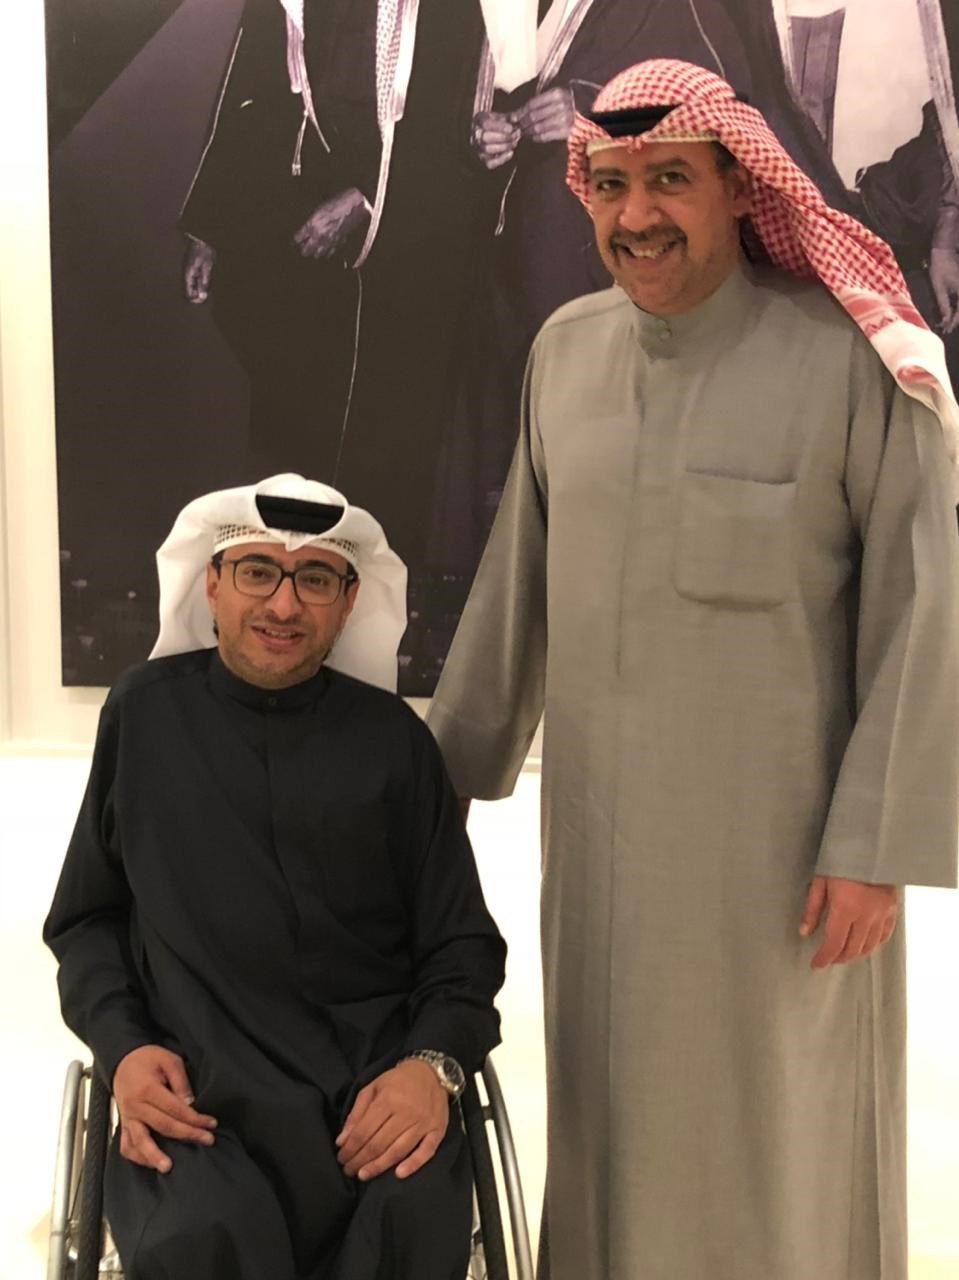 APC President Majid Rashed has met with OCA counterpart Sheikh Ahmad Al-Fahad Al-Sabah in Kuwait to discuss forging closer working ties between the two organisations ©APC